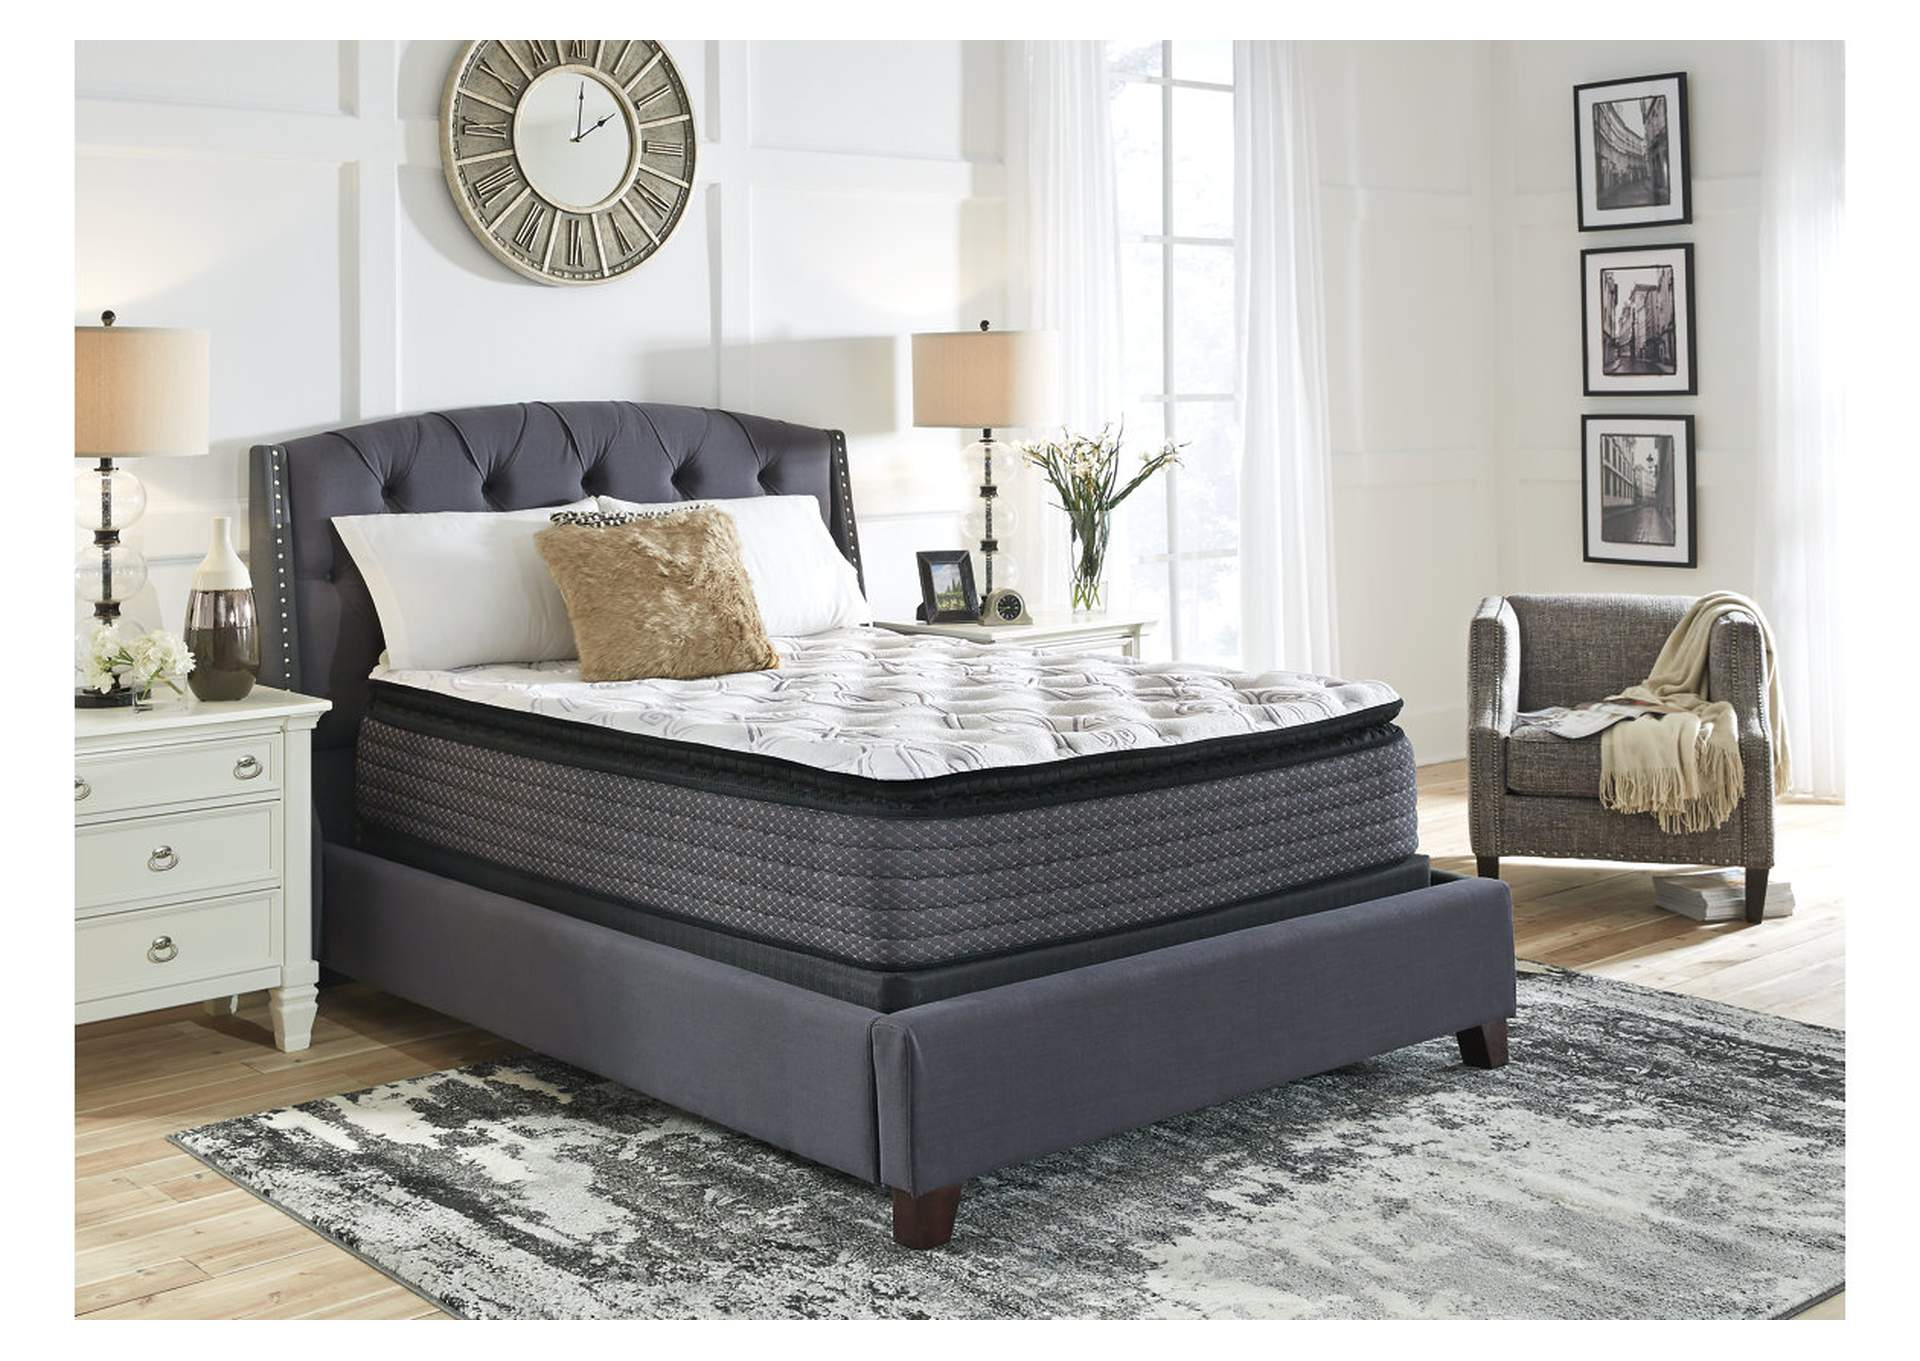 Limited Edition Pillowtop Queen Mattress,Sierra Sleep by Ashley